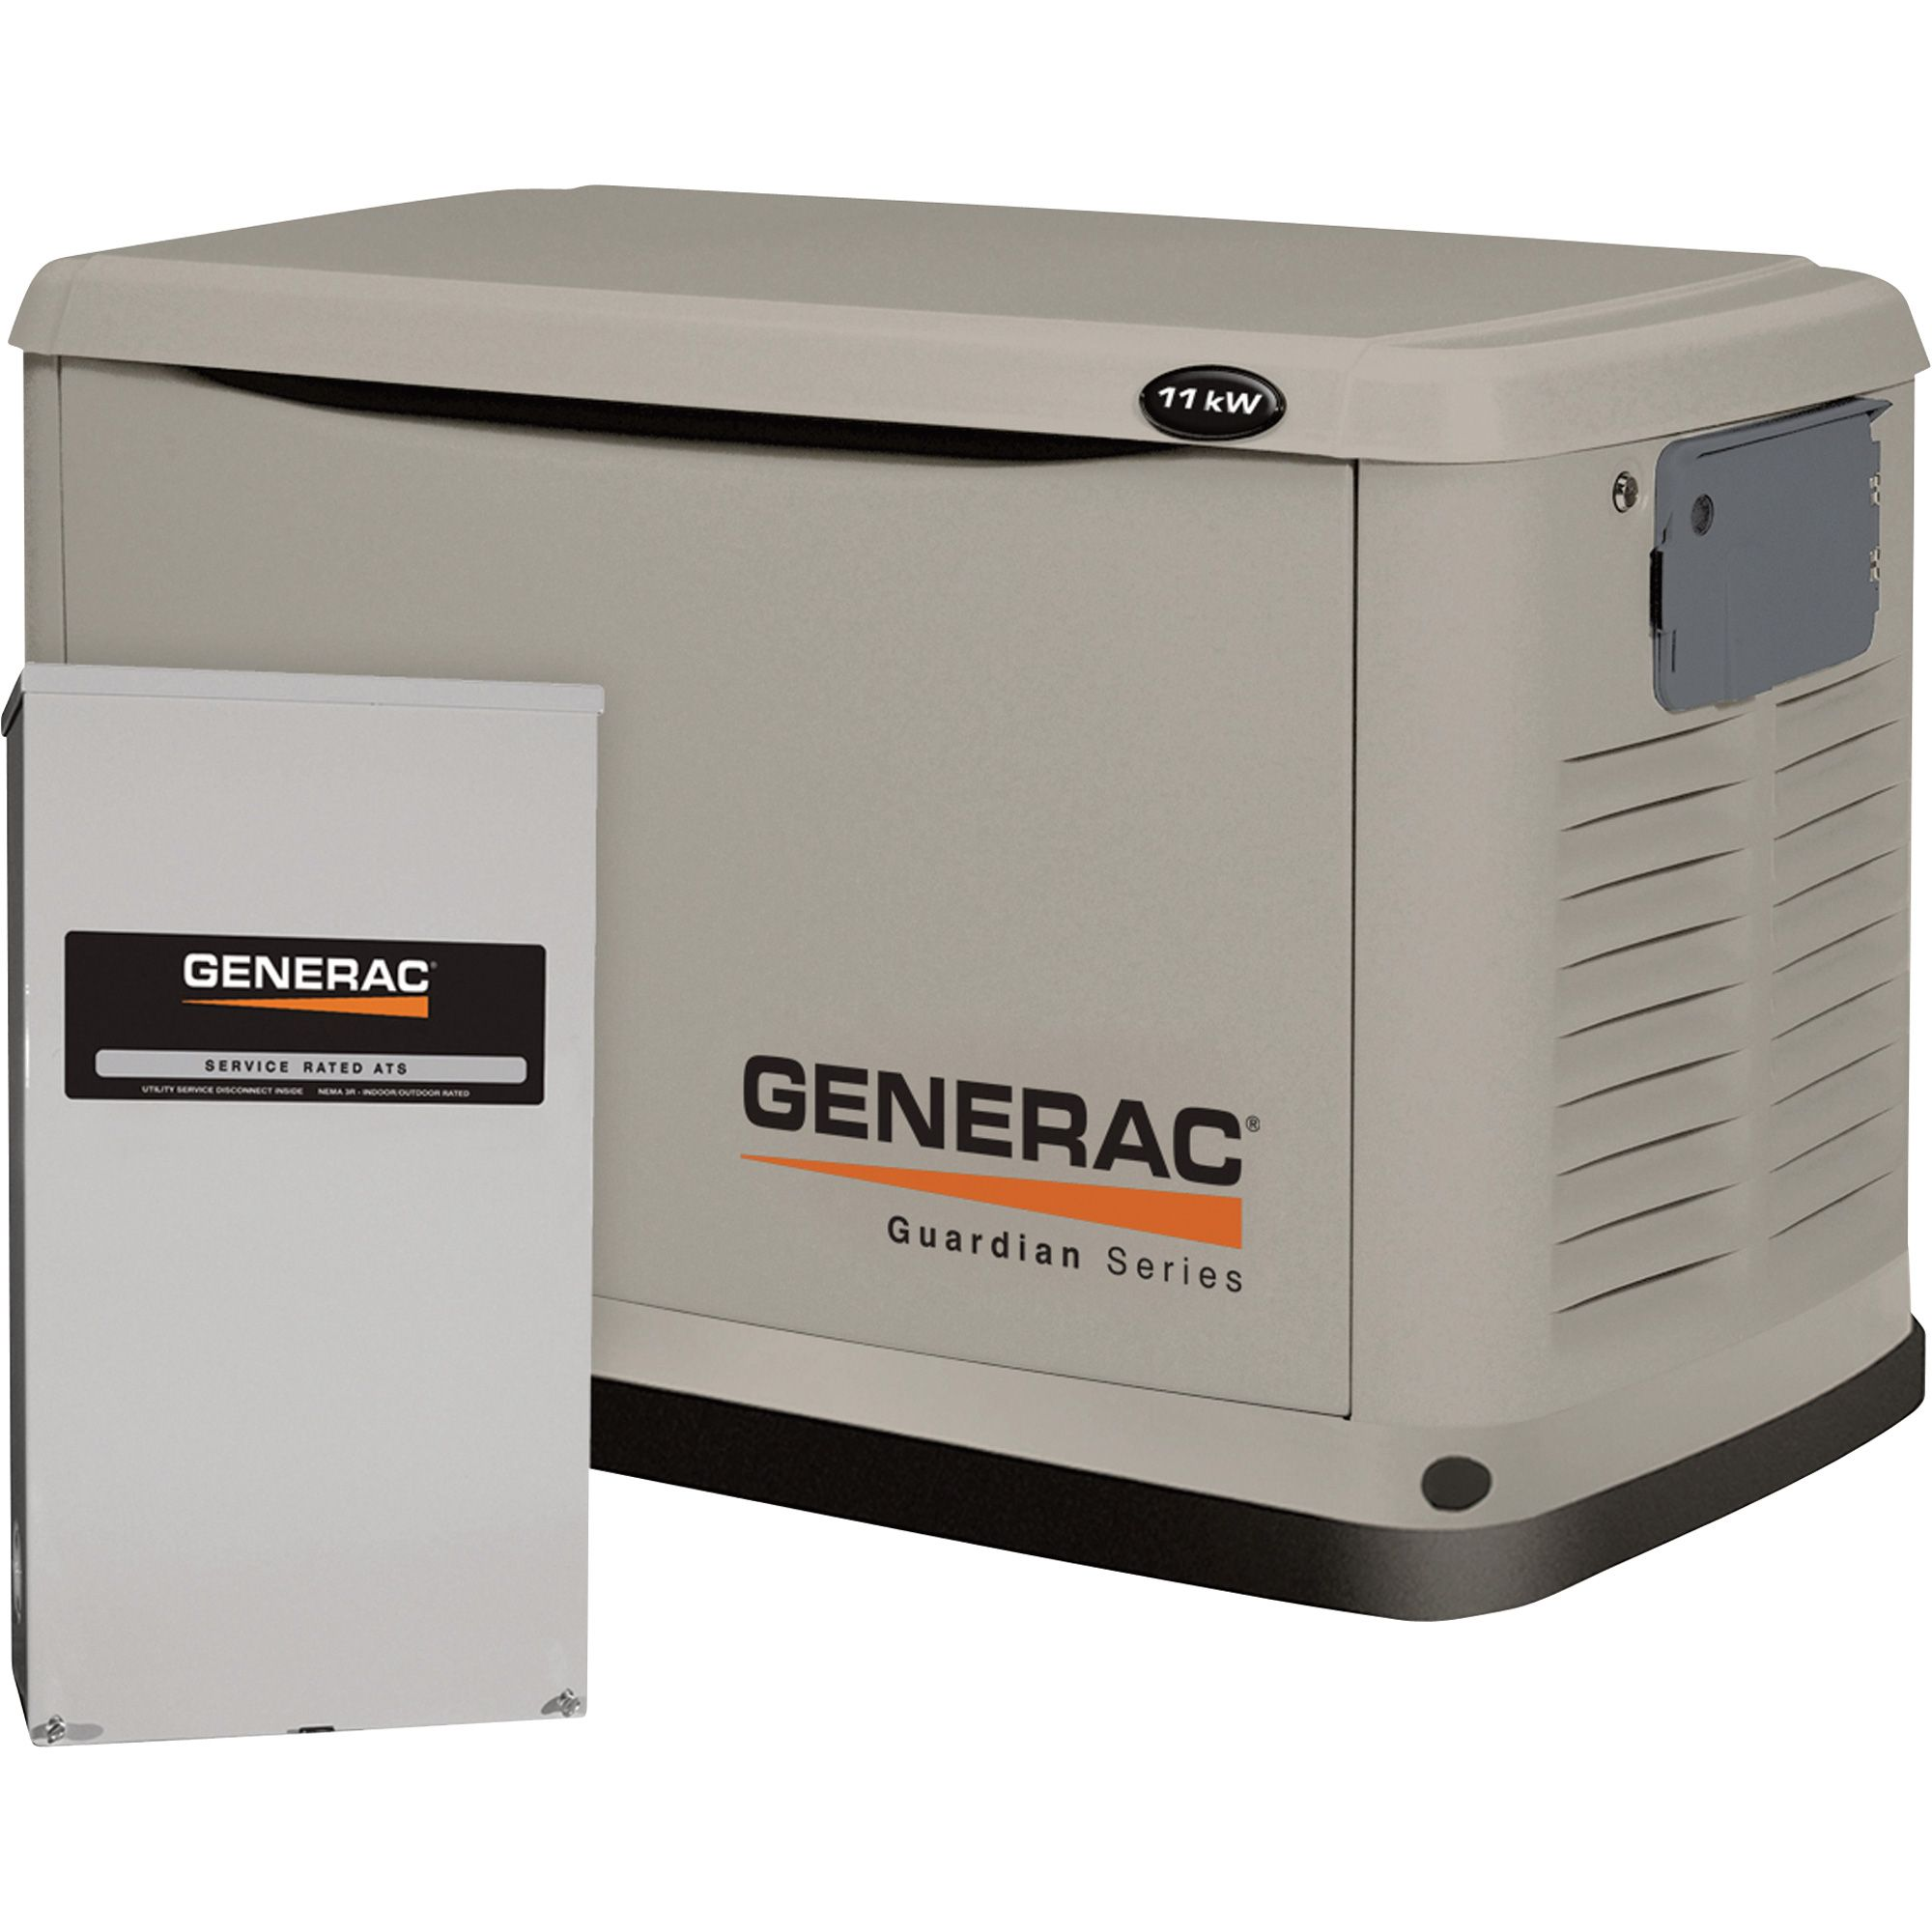 hight resolution of free shipping generac guardian air cooled standby generator 11kw lp 10kw ng 200 amp service rated smart switch model 6438 residential standby